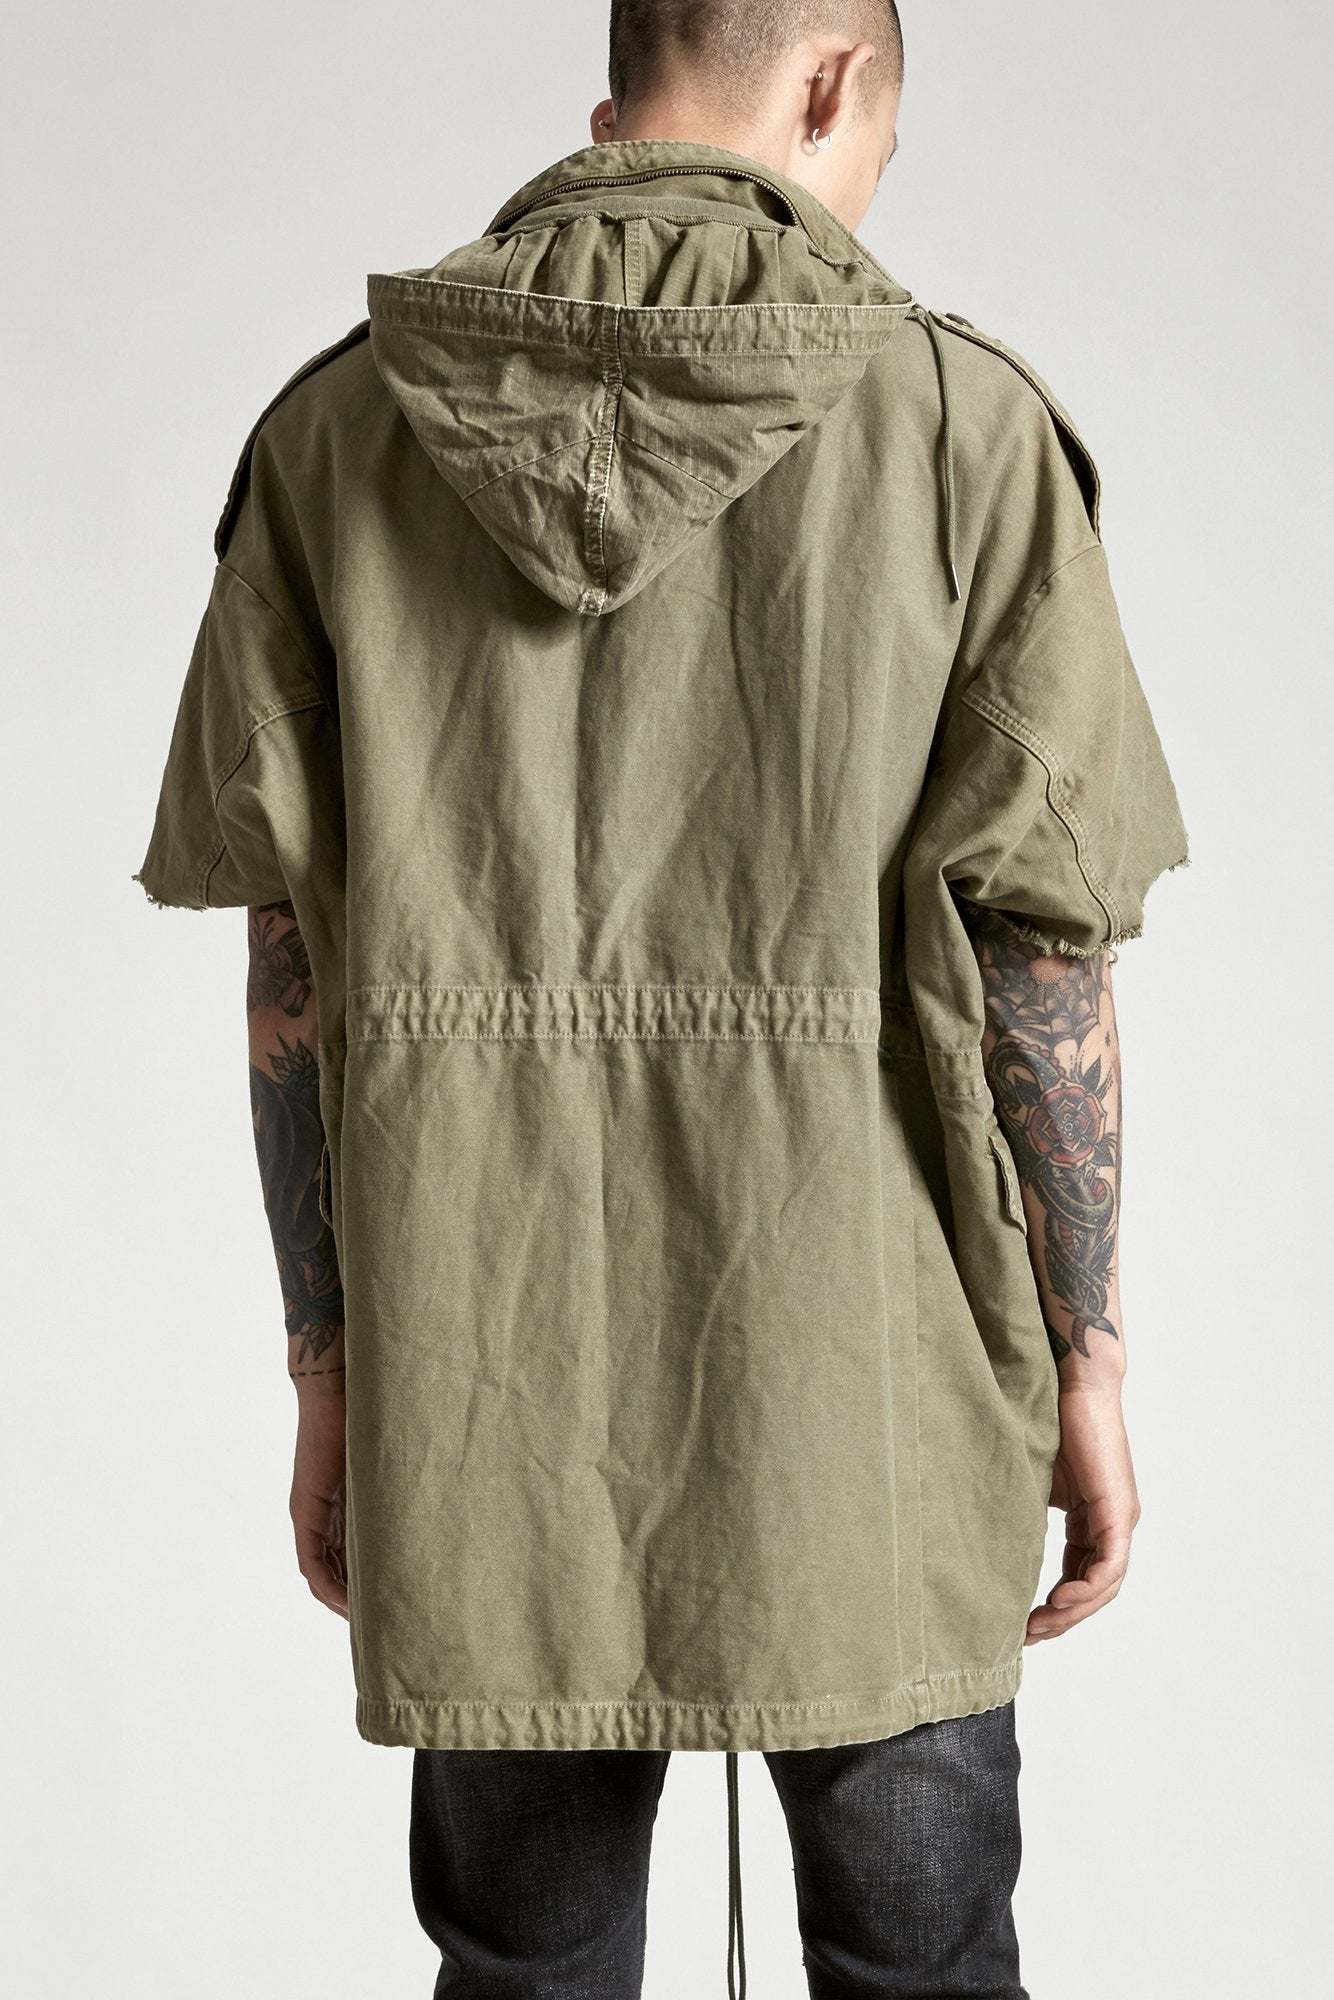 Oversized Cut Off M65 - Olive